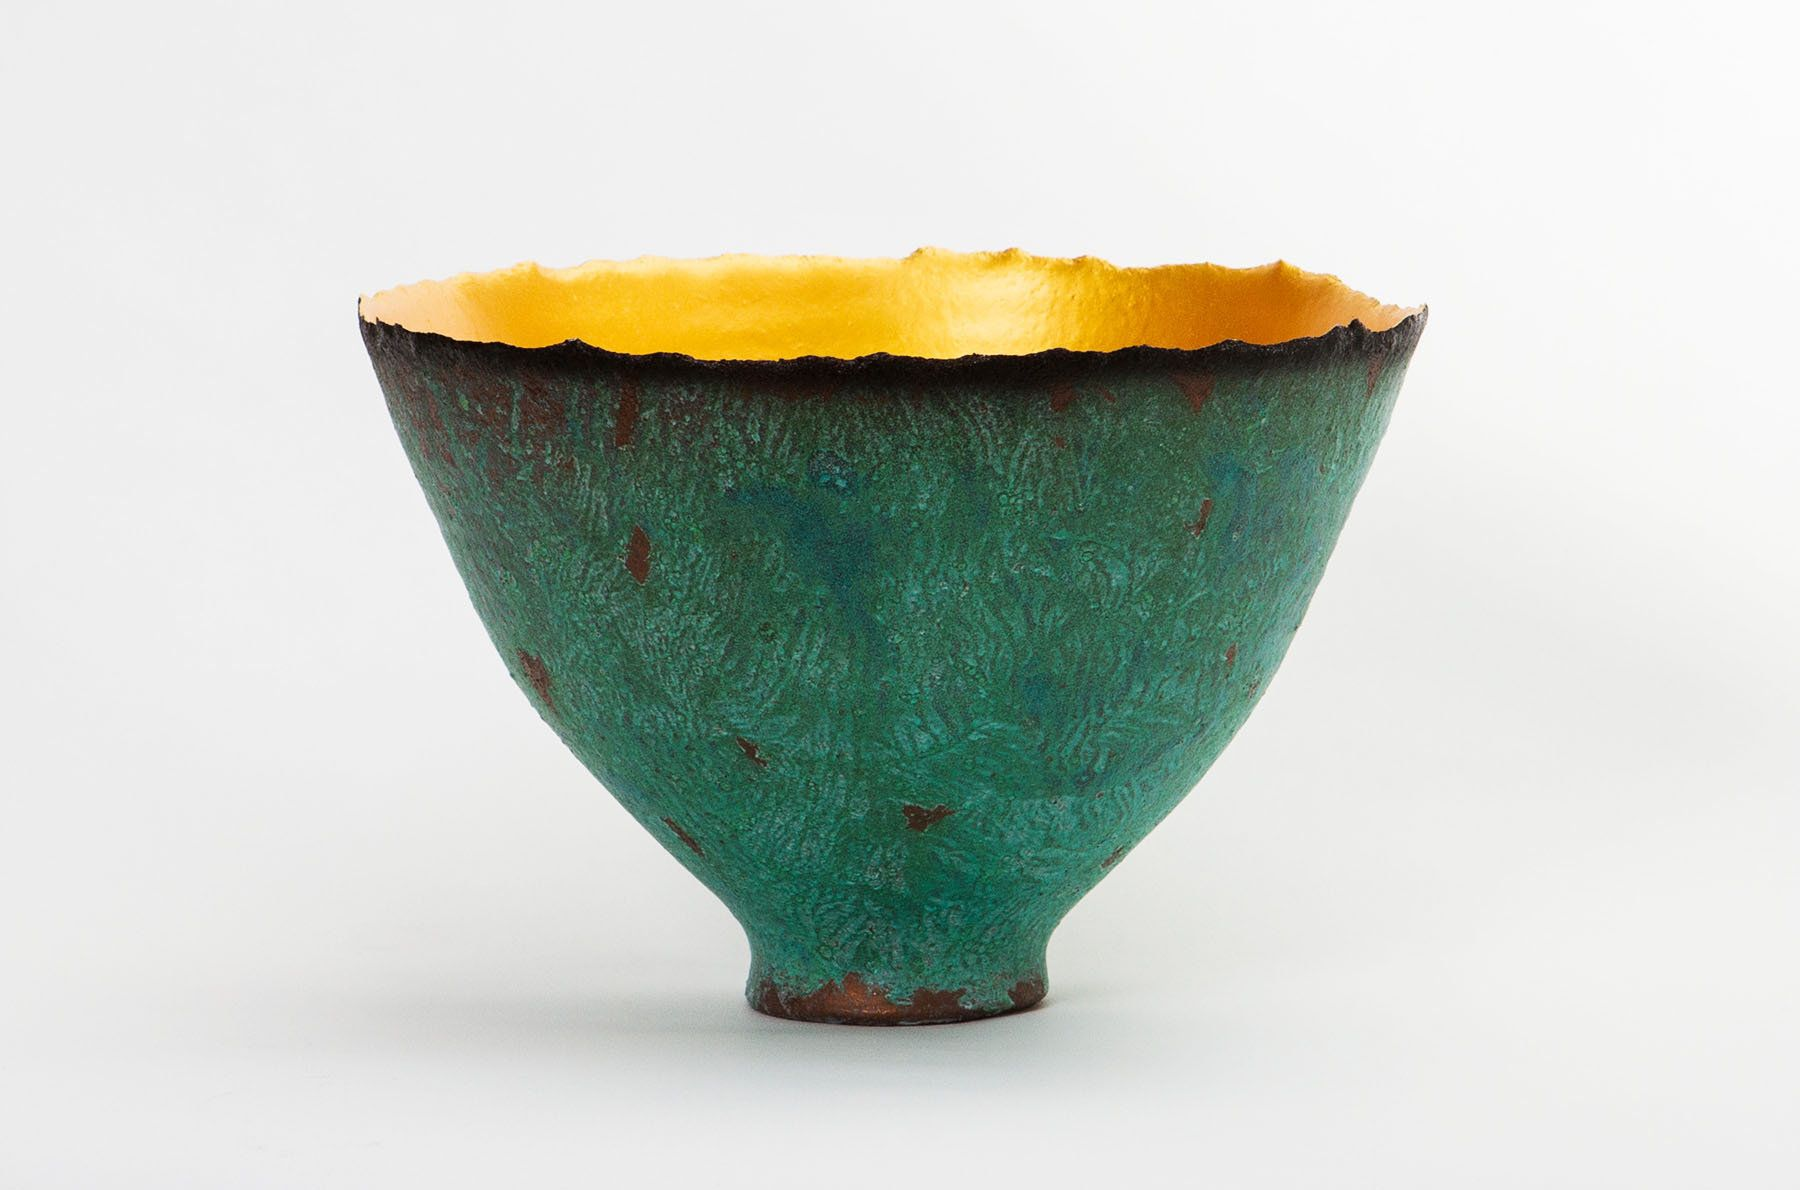 Decorative Ceramic Bowls Patina Prosperity Bowlcheryl Williams Ceramic Bowl  Pottery